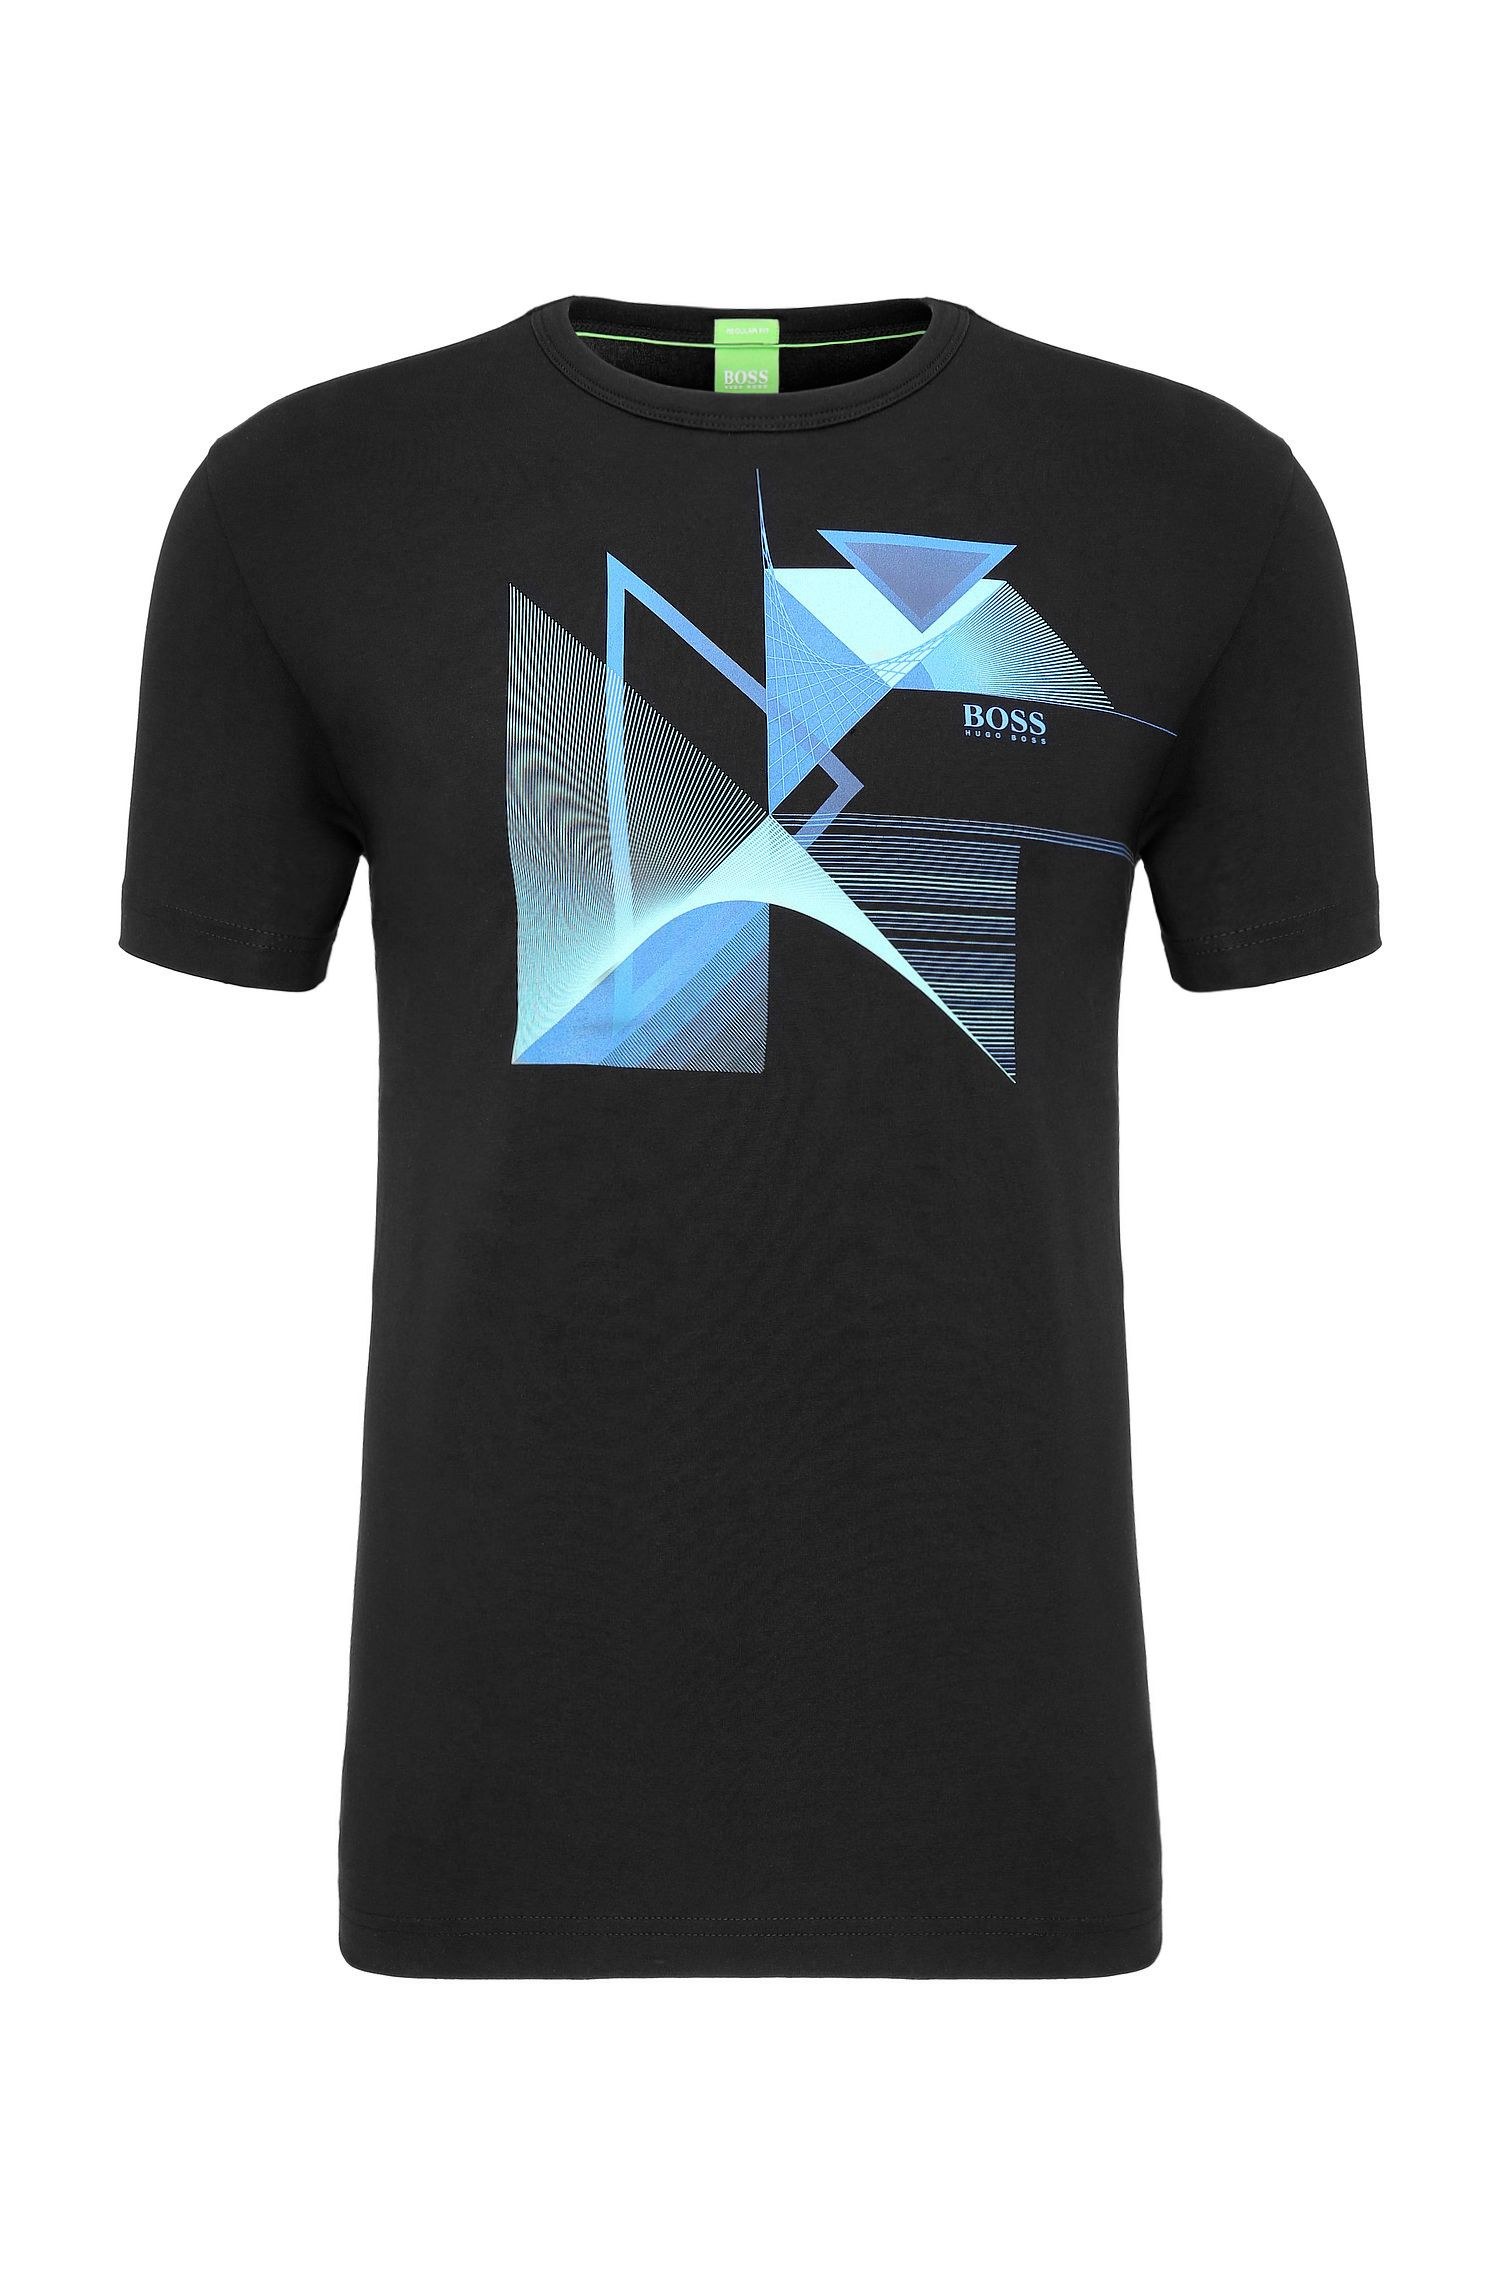 Stretch Cotton Graphic T-Shirt | Tee